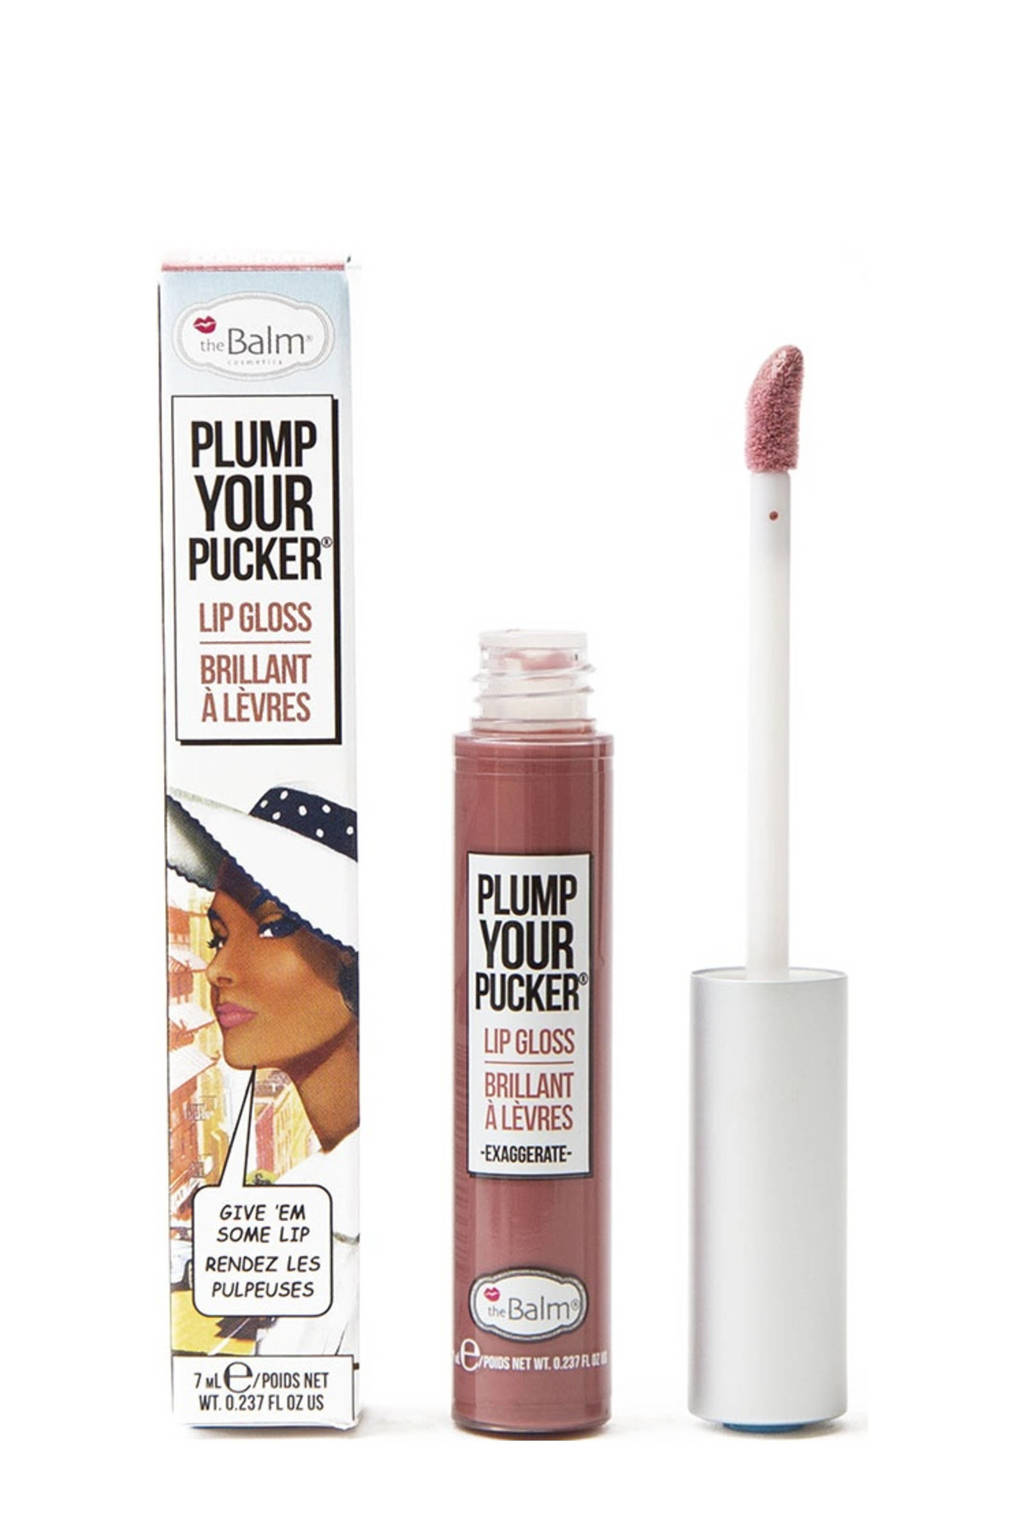 The Balm Plump Your Pucker lipgloss Exaggerate, Pink